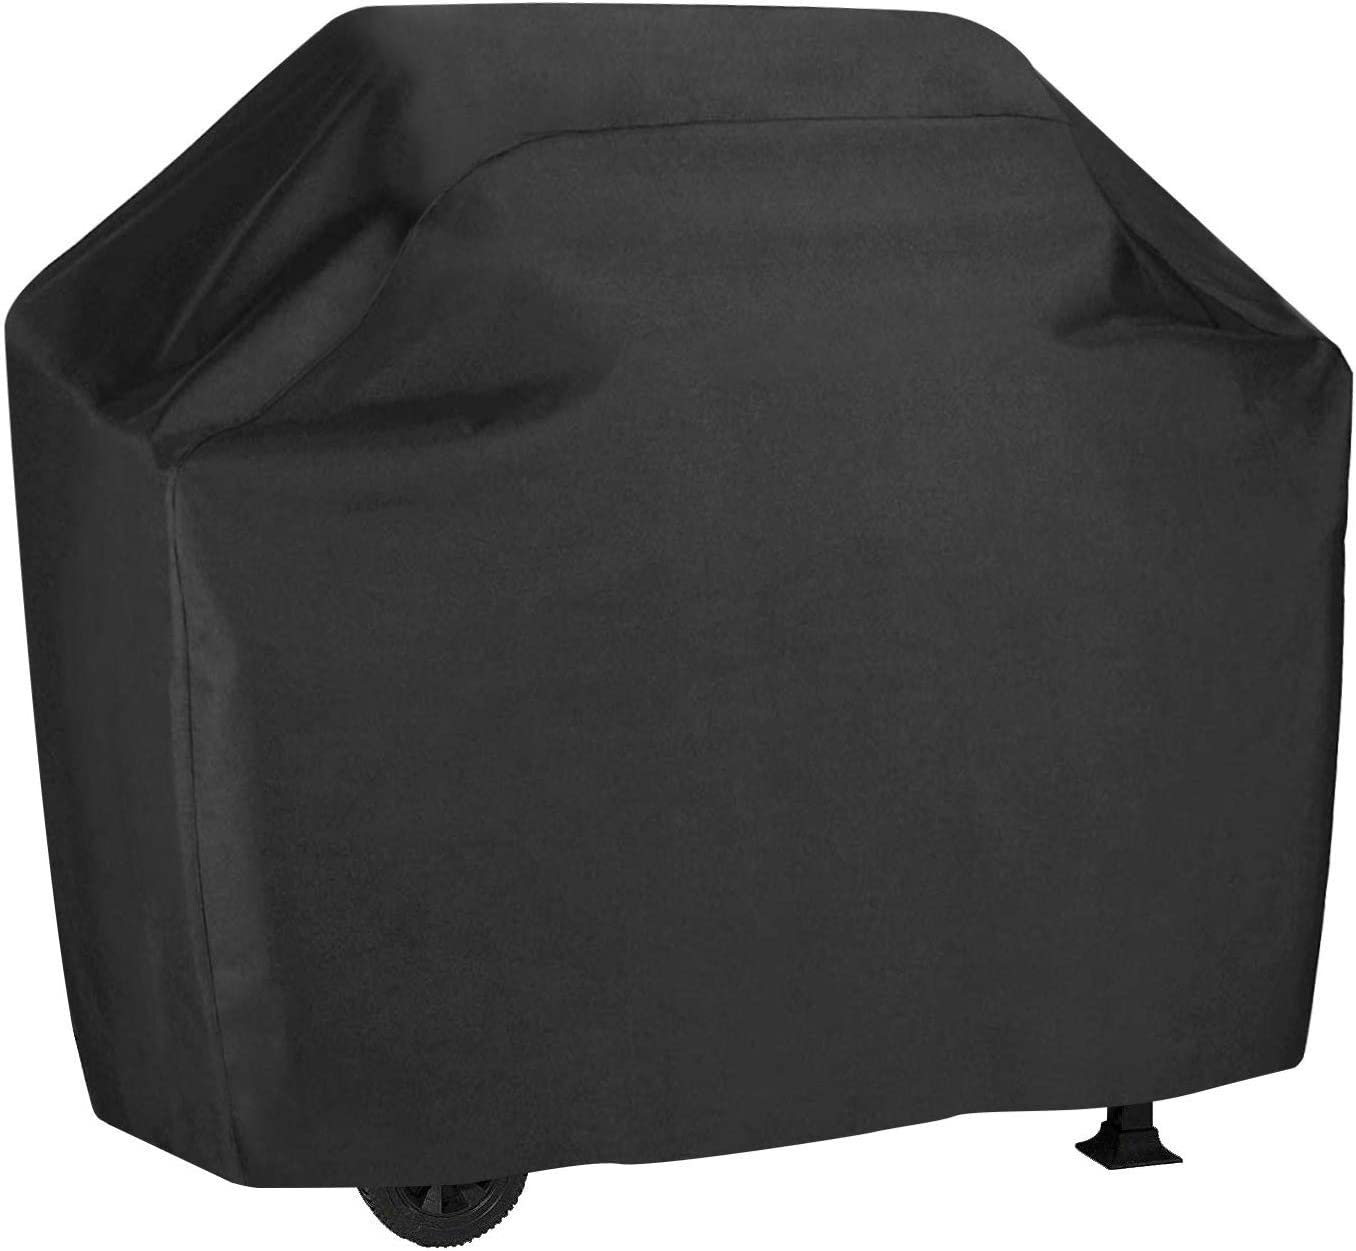 Grill Cover, 58 inch BBQ Gas Grill Cover Waterproof Weather Resistant, UV and Fade Resistant, UV Resistant Materia for Weber Char-Broil Nexgrill Grills and More, VIBOOS : Garden & Outdoor